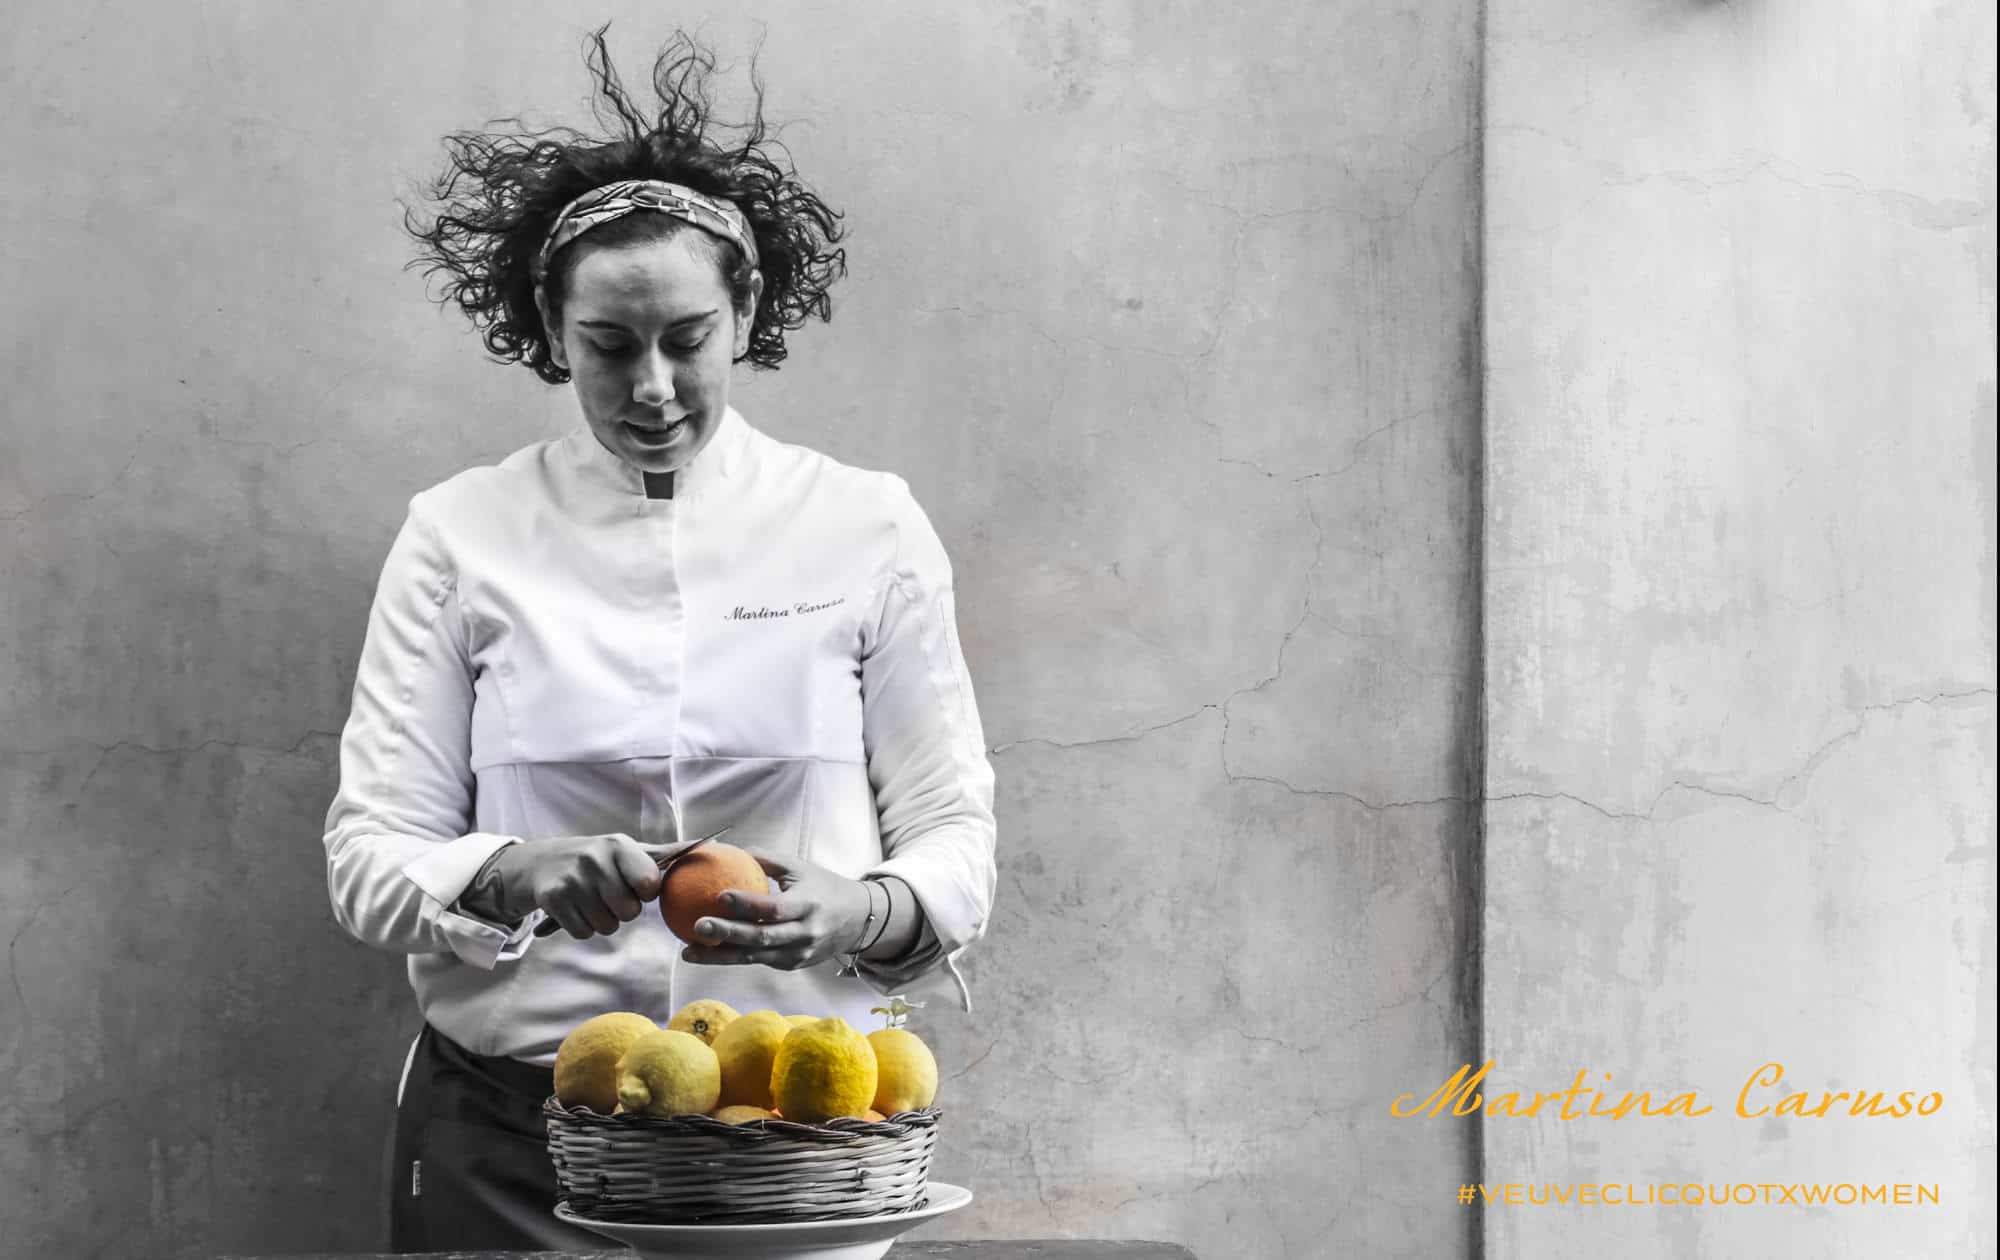 MARTINA CARUSO VINCE IL PREMIO MICHELIN CHEF DONNA 2019